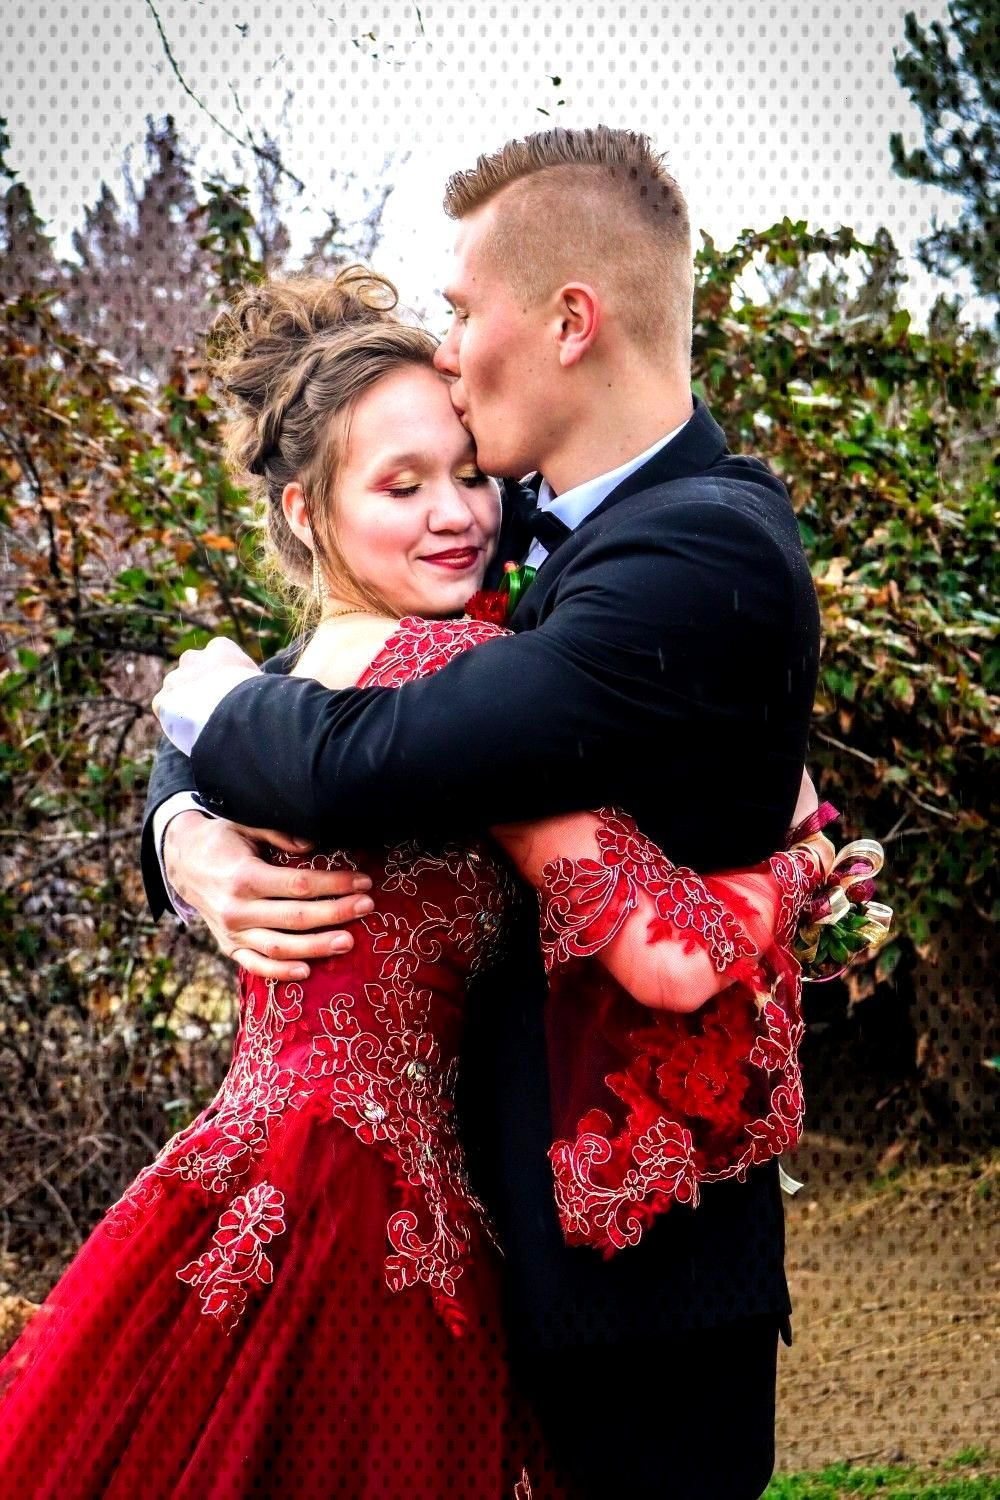 Couple Couple Photography during a High School Dance Shoot Spring 2019 by Cute Squirrel Photography